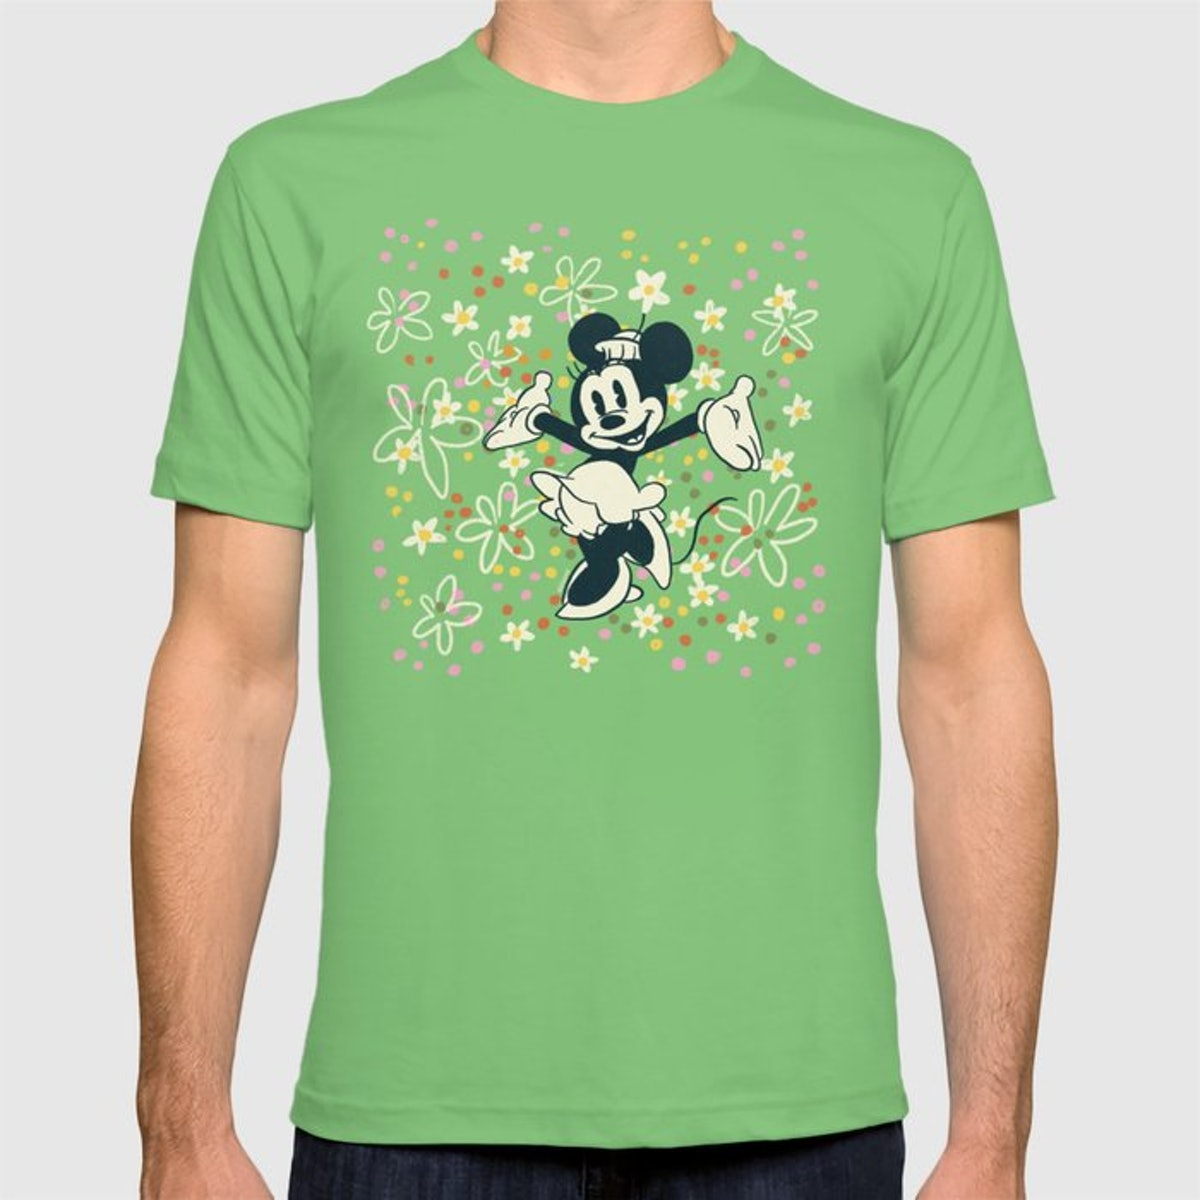 This Society6 x Disney Minnie Mouse Collection tee is perfect to wear to the Disney Parks.